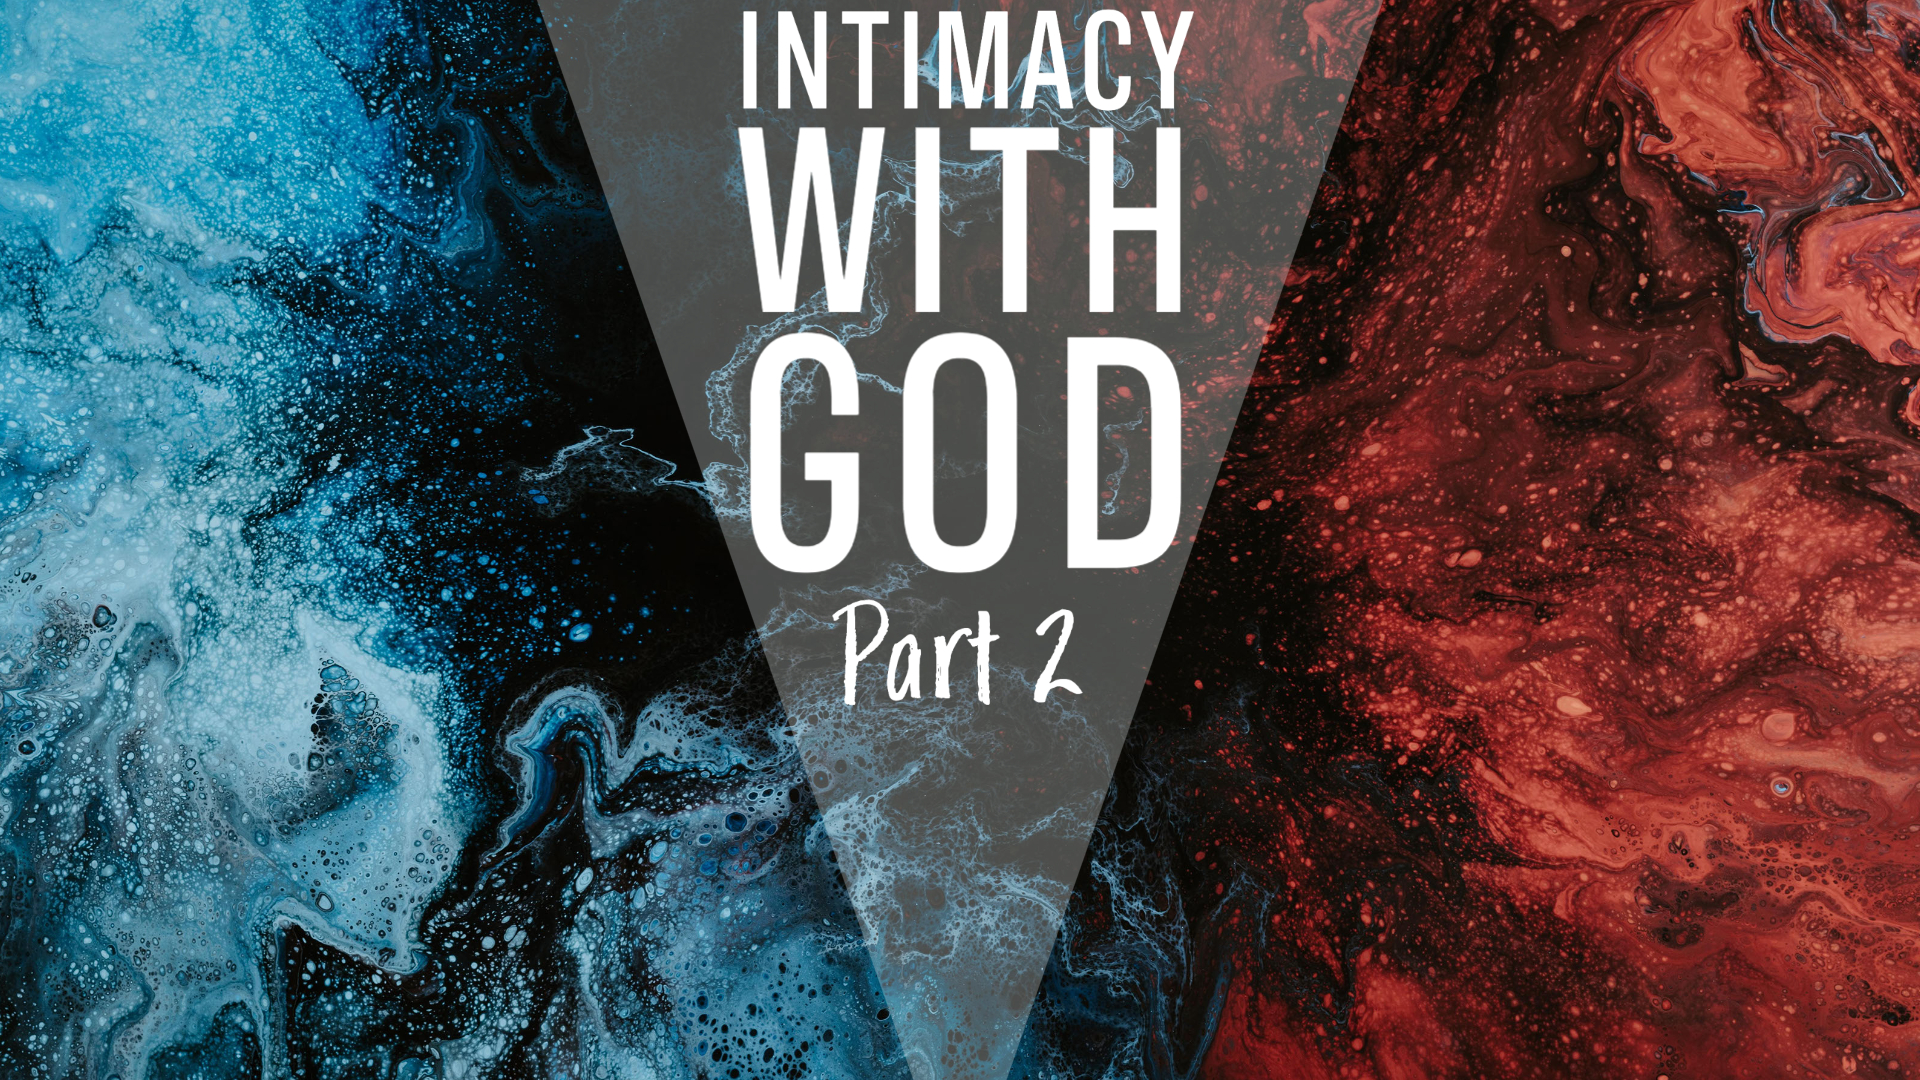 Intimacy with God Part 1 Graphic (2)